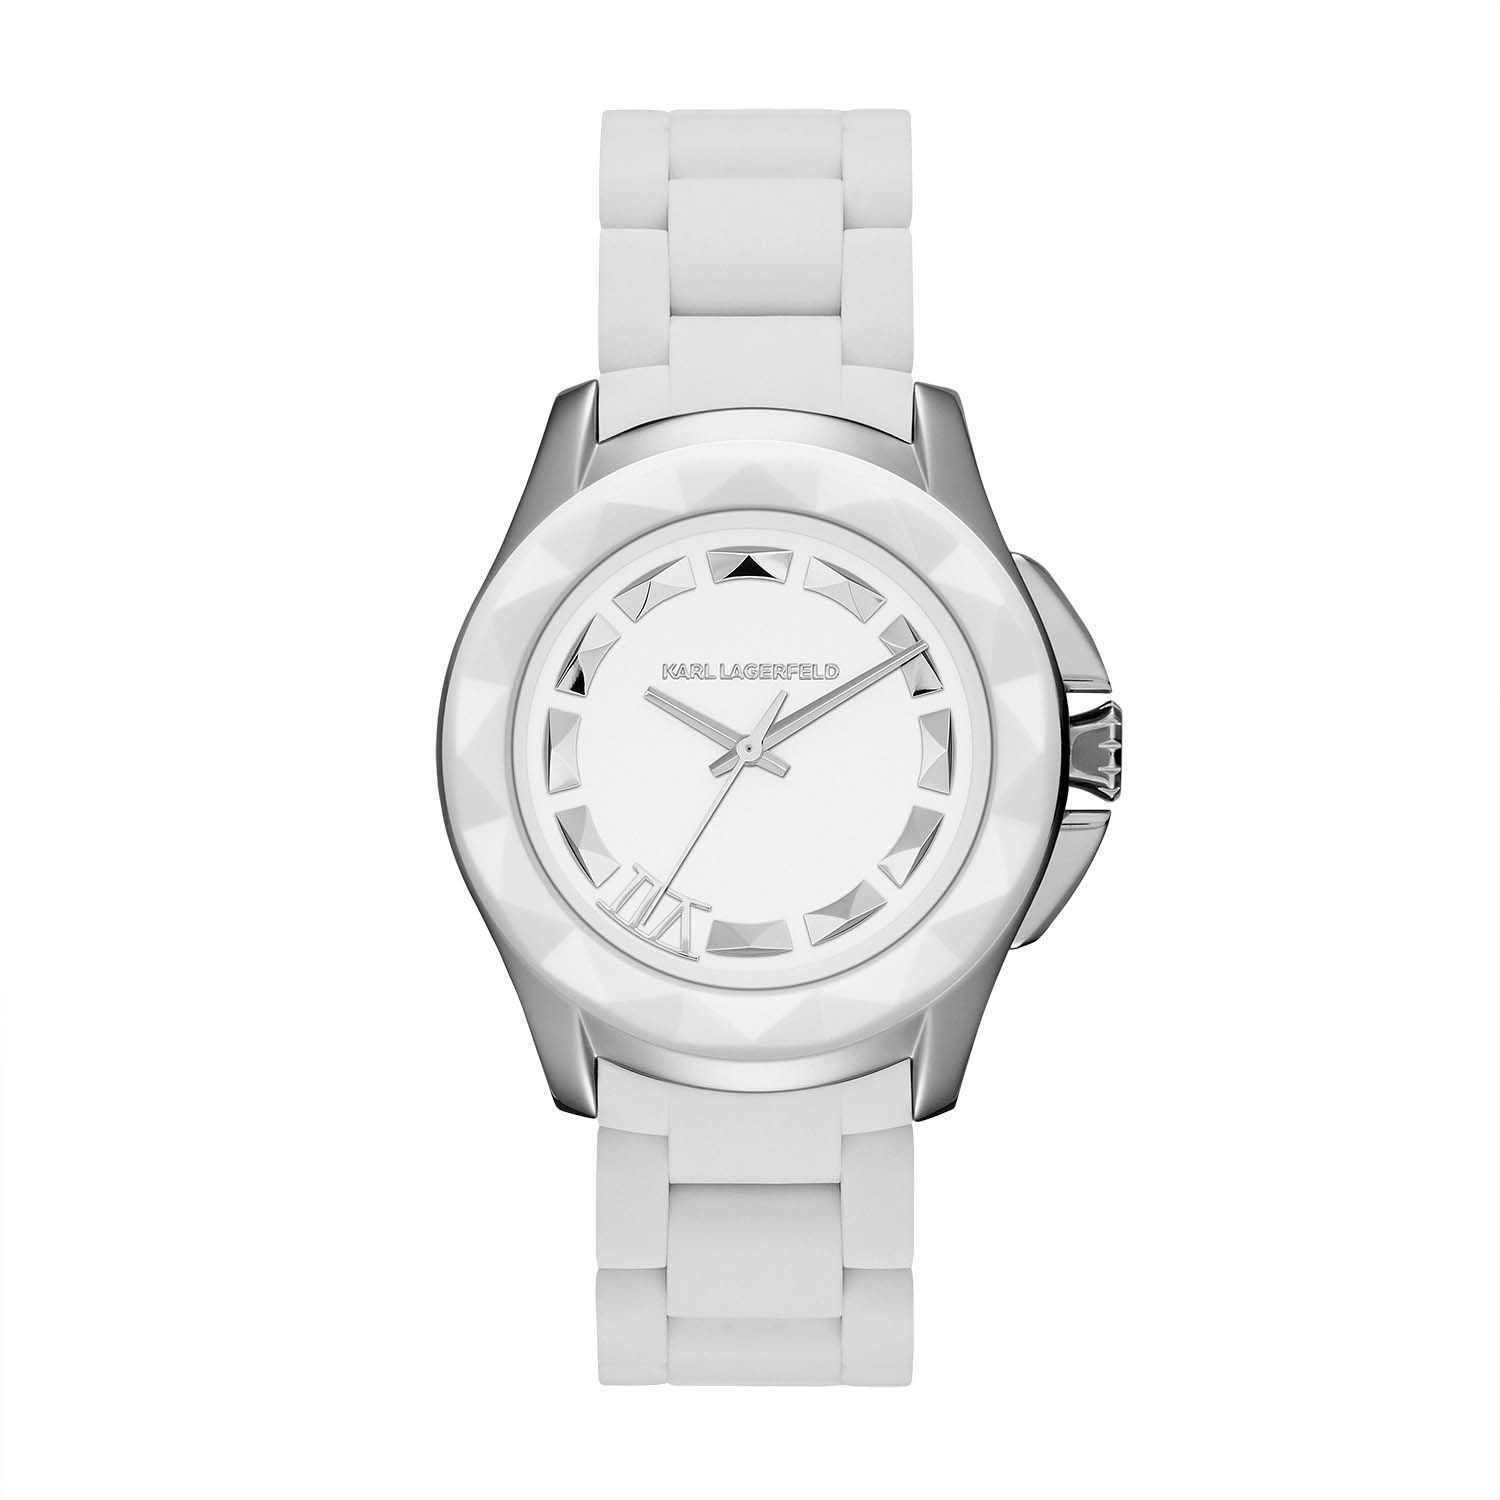 KL1016 KLASSIC white unisex watch